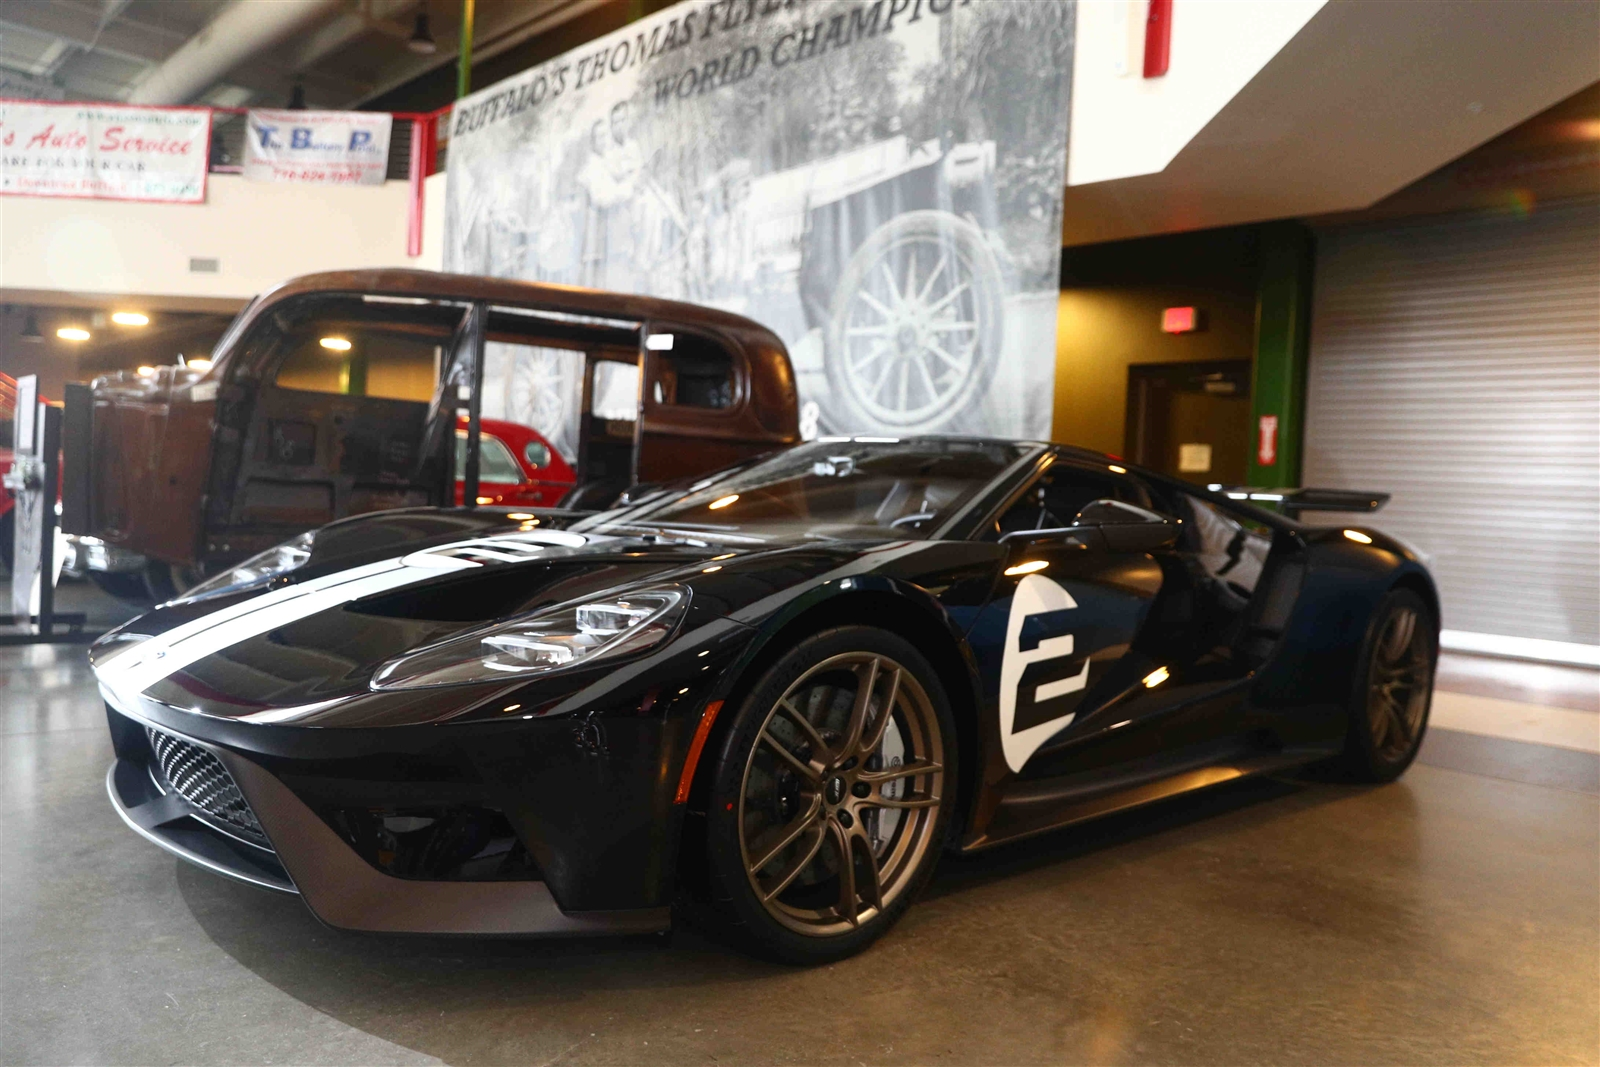 This 2017 Ford GT '66 Series Supercar is on display at the Buffalo Transportation/Pierce-Arrow Museum, 263 Michigan Ave., in Buffalo. The Ford GT has a carbon fiber body and a 3.5L EcoBoost V6 engine. The rare car is owned by Paul and Lauren Fix of Clarence. It is valued at $550,000.